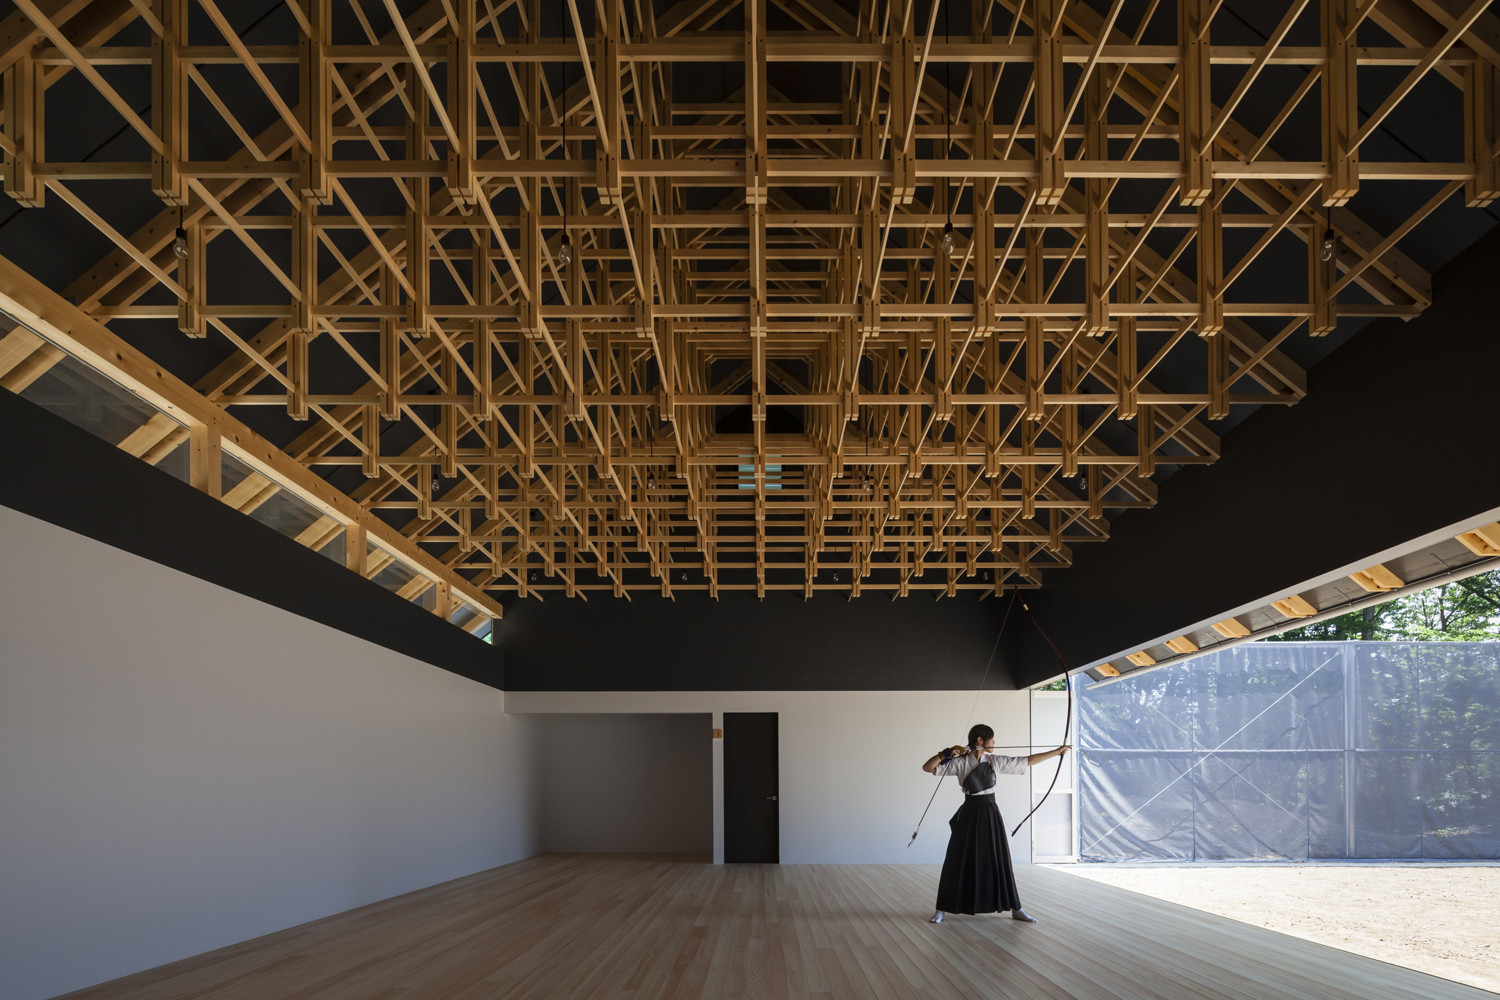 Archery Hall & Boxing Club / FT Architects